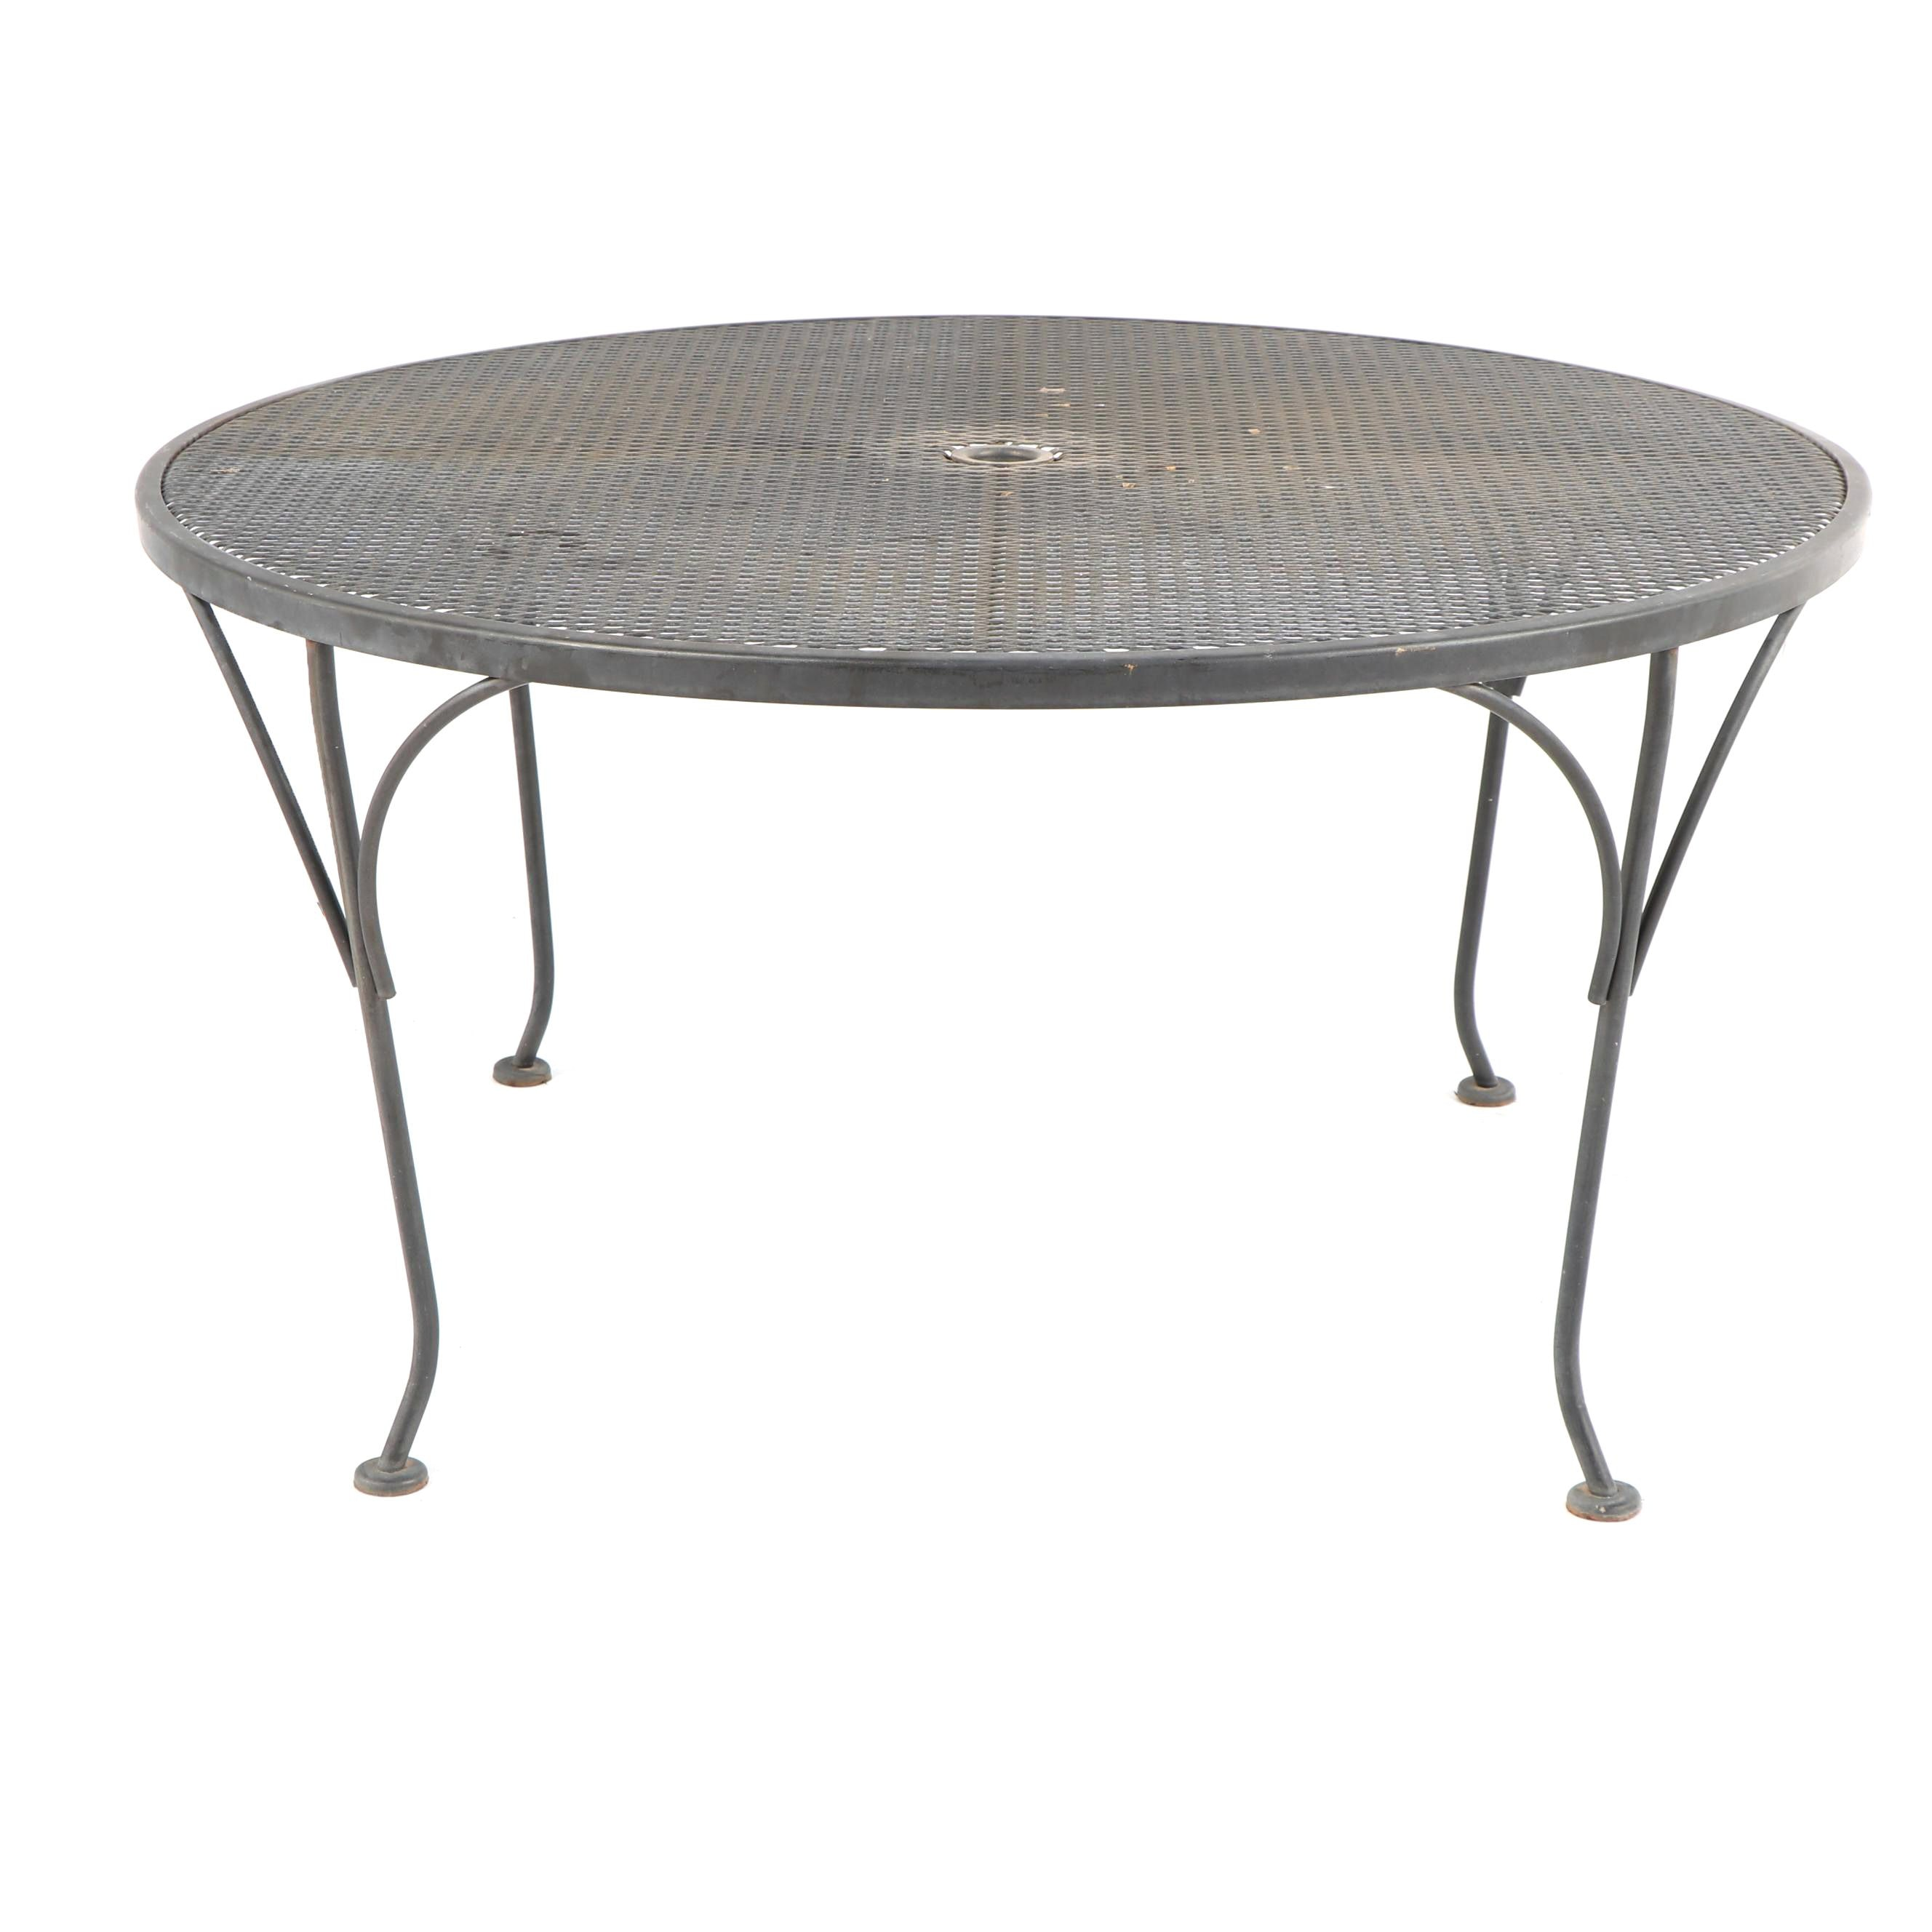 Round Metal Mesh Top Patio Coffee Table